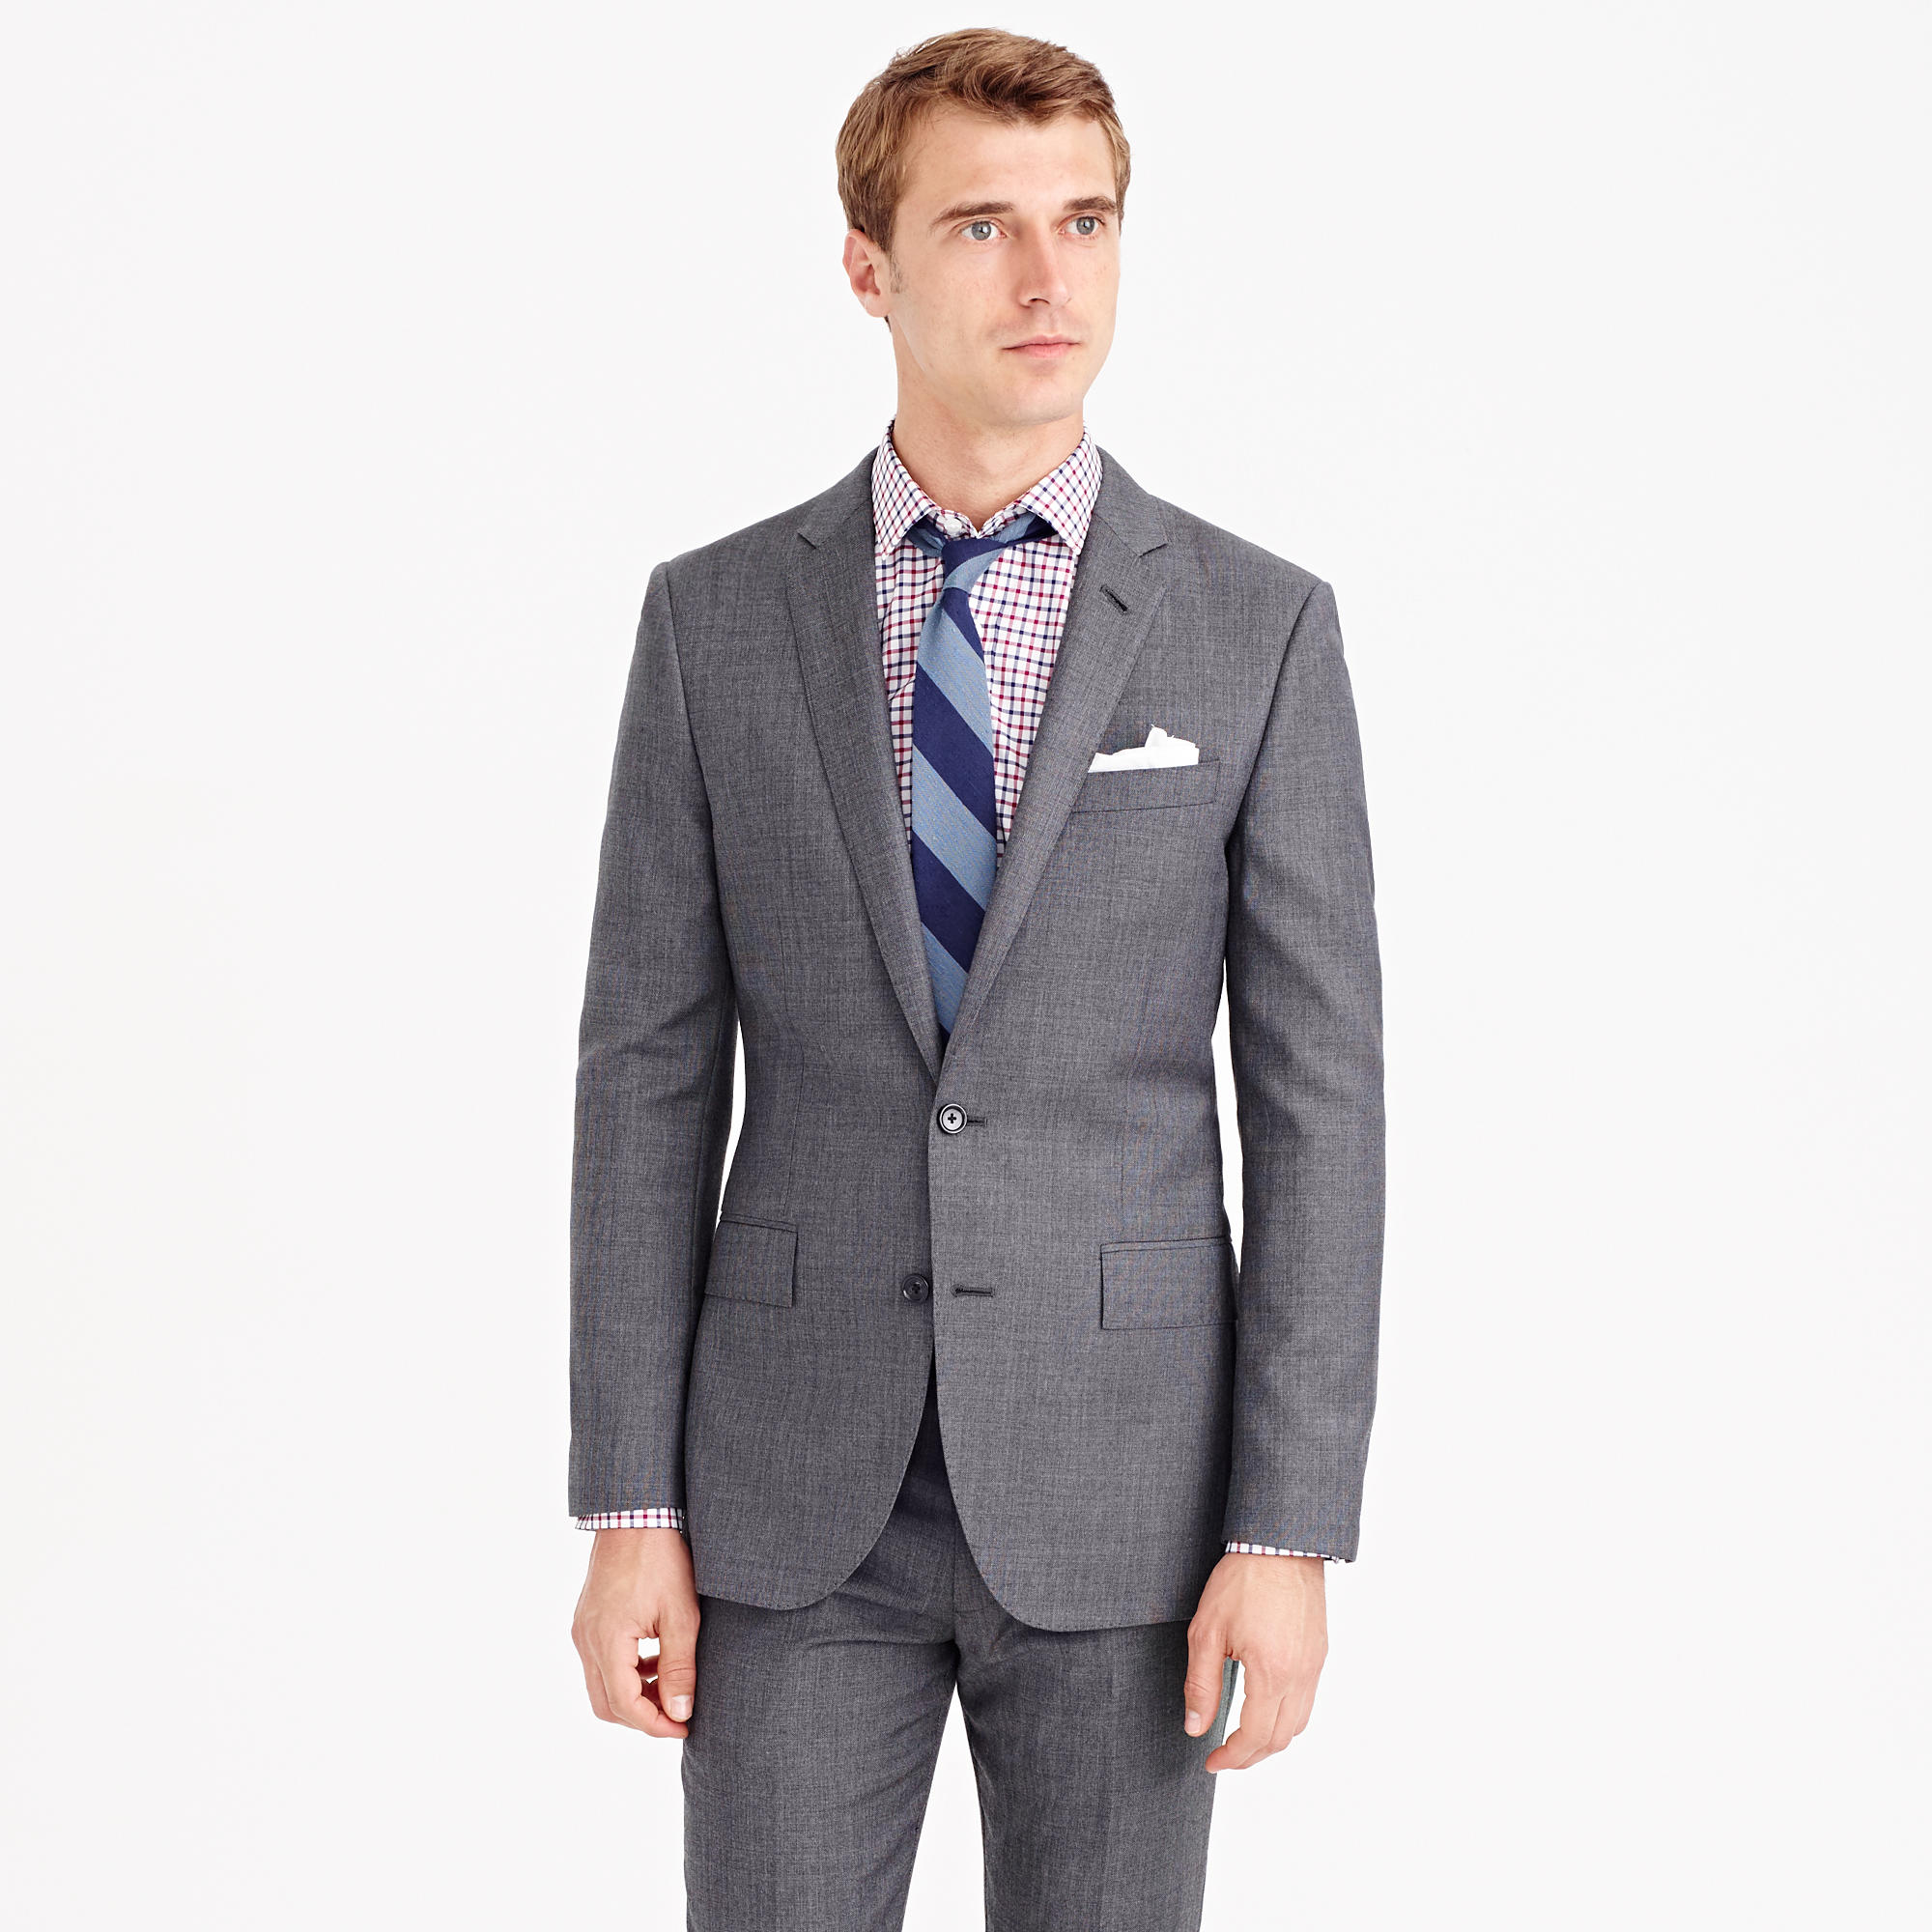 Wool Man Sute Wedding: Ludlow Suit Jacket With Center Vent In Italian Worsted